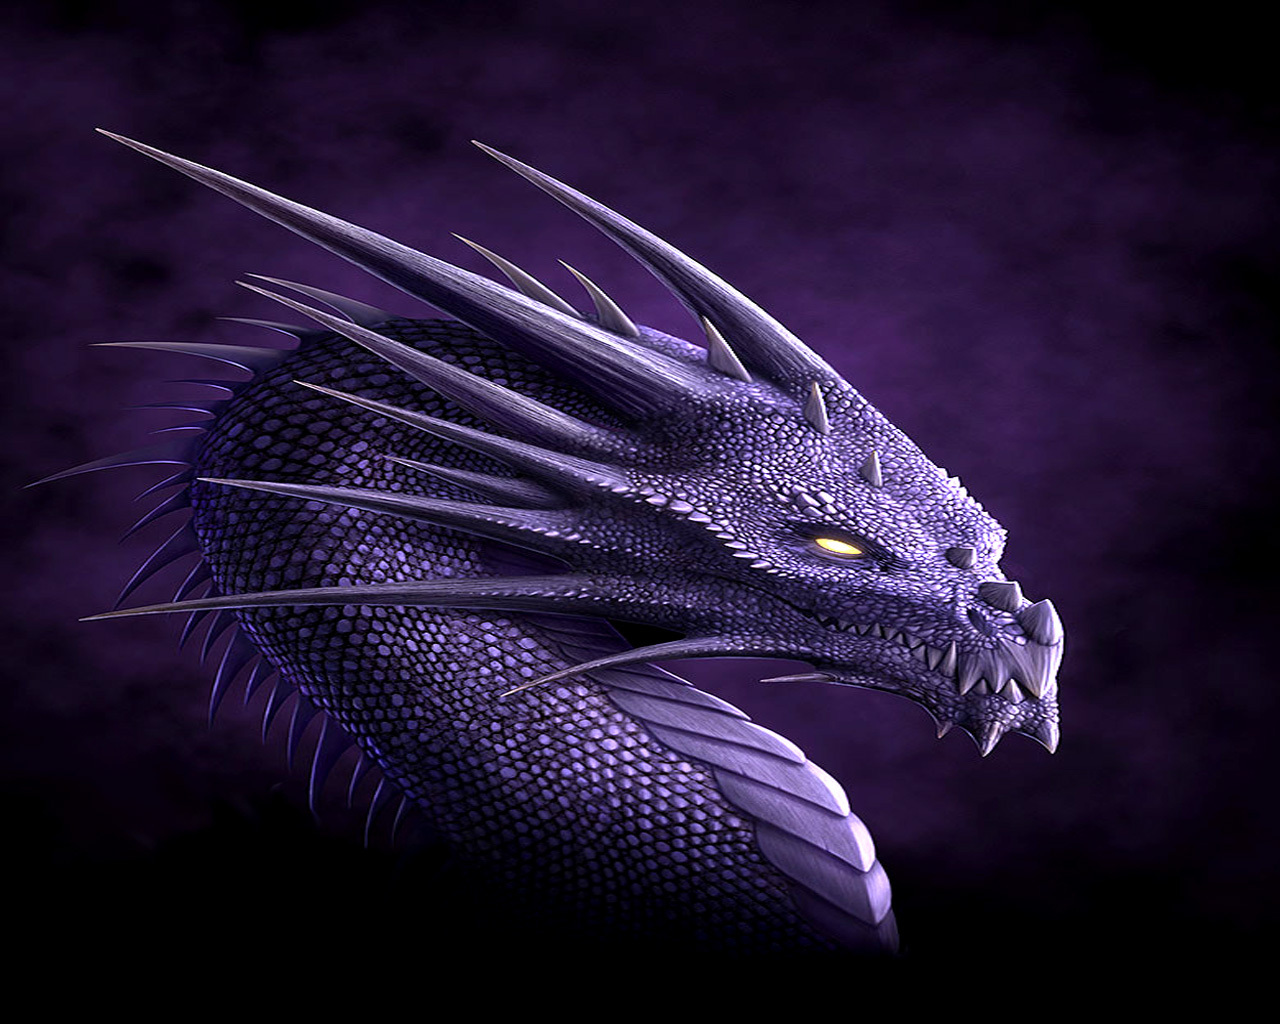 Dragons images Dragon Wallpaper HD wallpaper and background photos 1280x1024